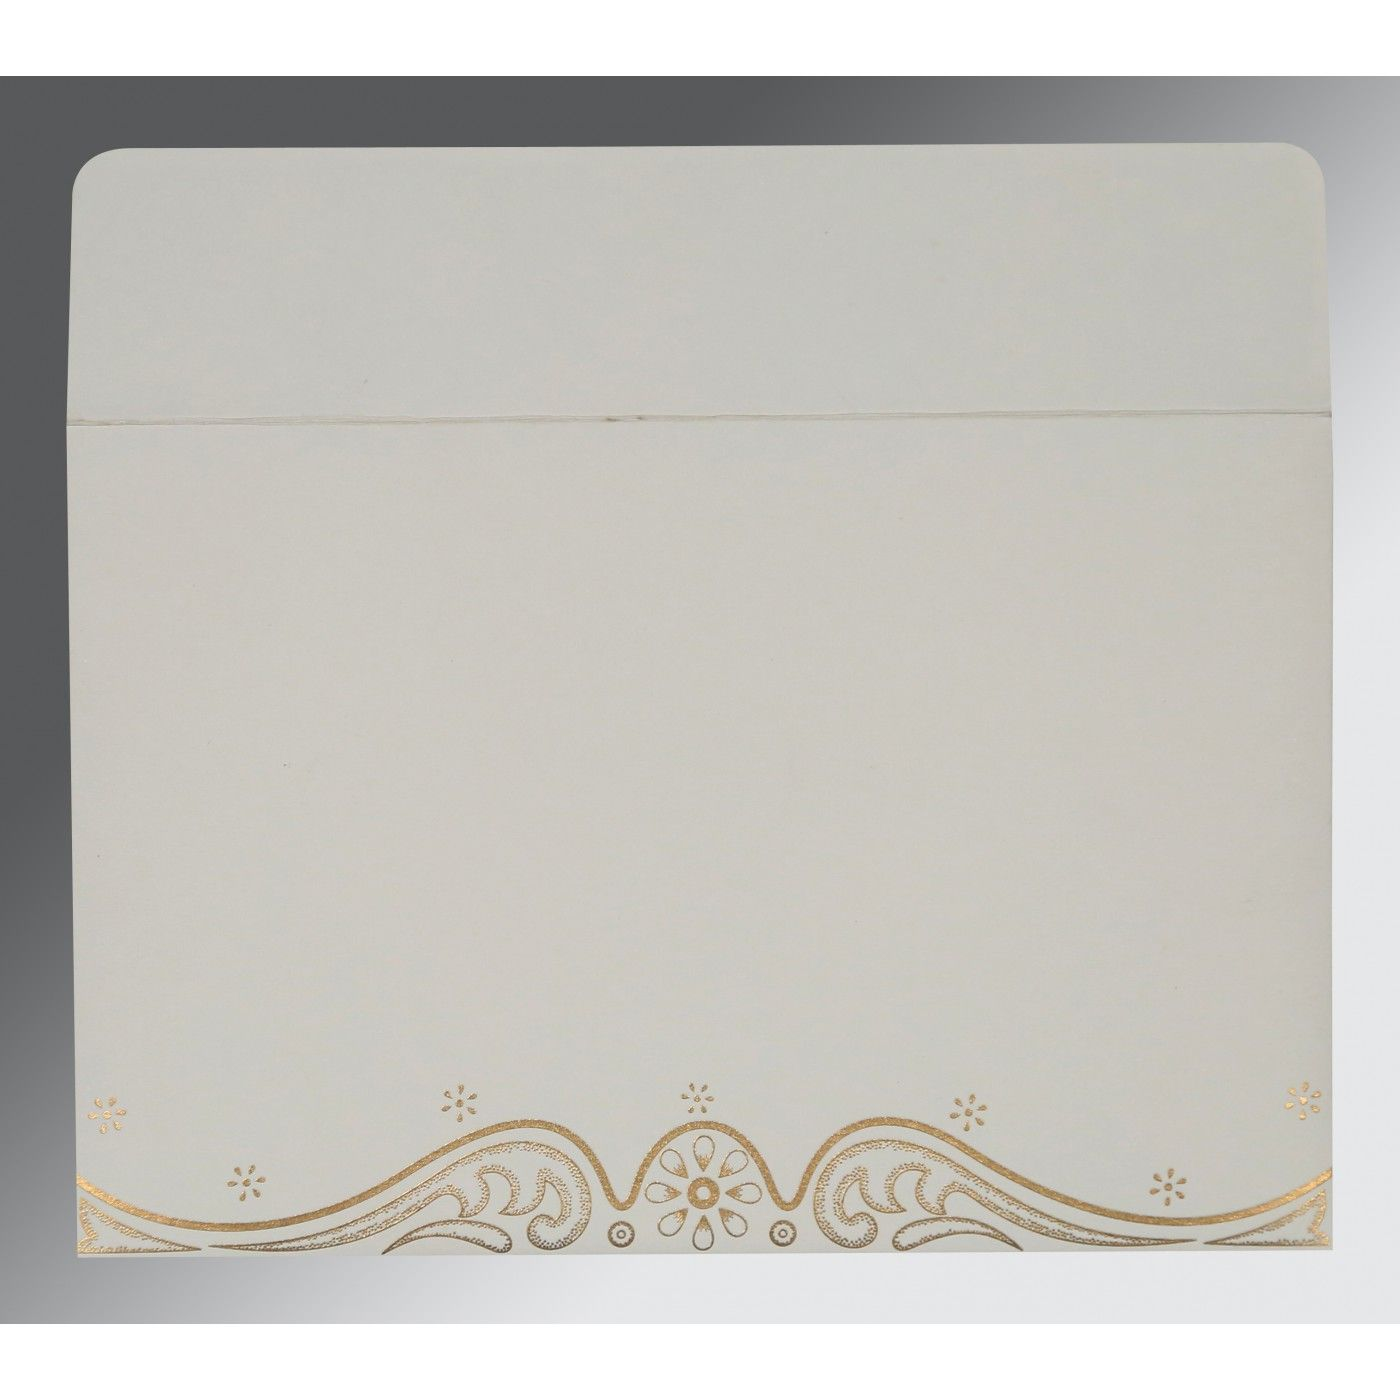 CHAMOISEE MATTE EMBOSSED WEDDING INVITATION : CW-8221I - IndianWeddingCards